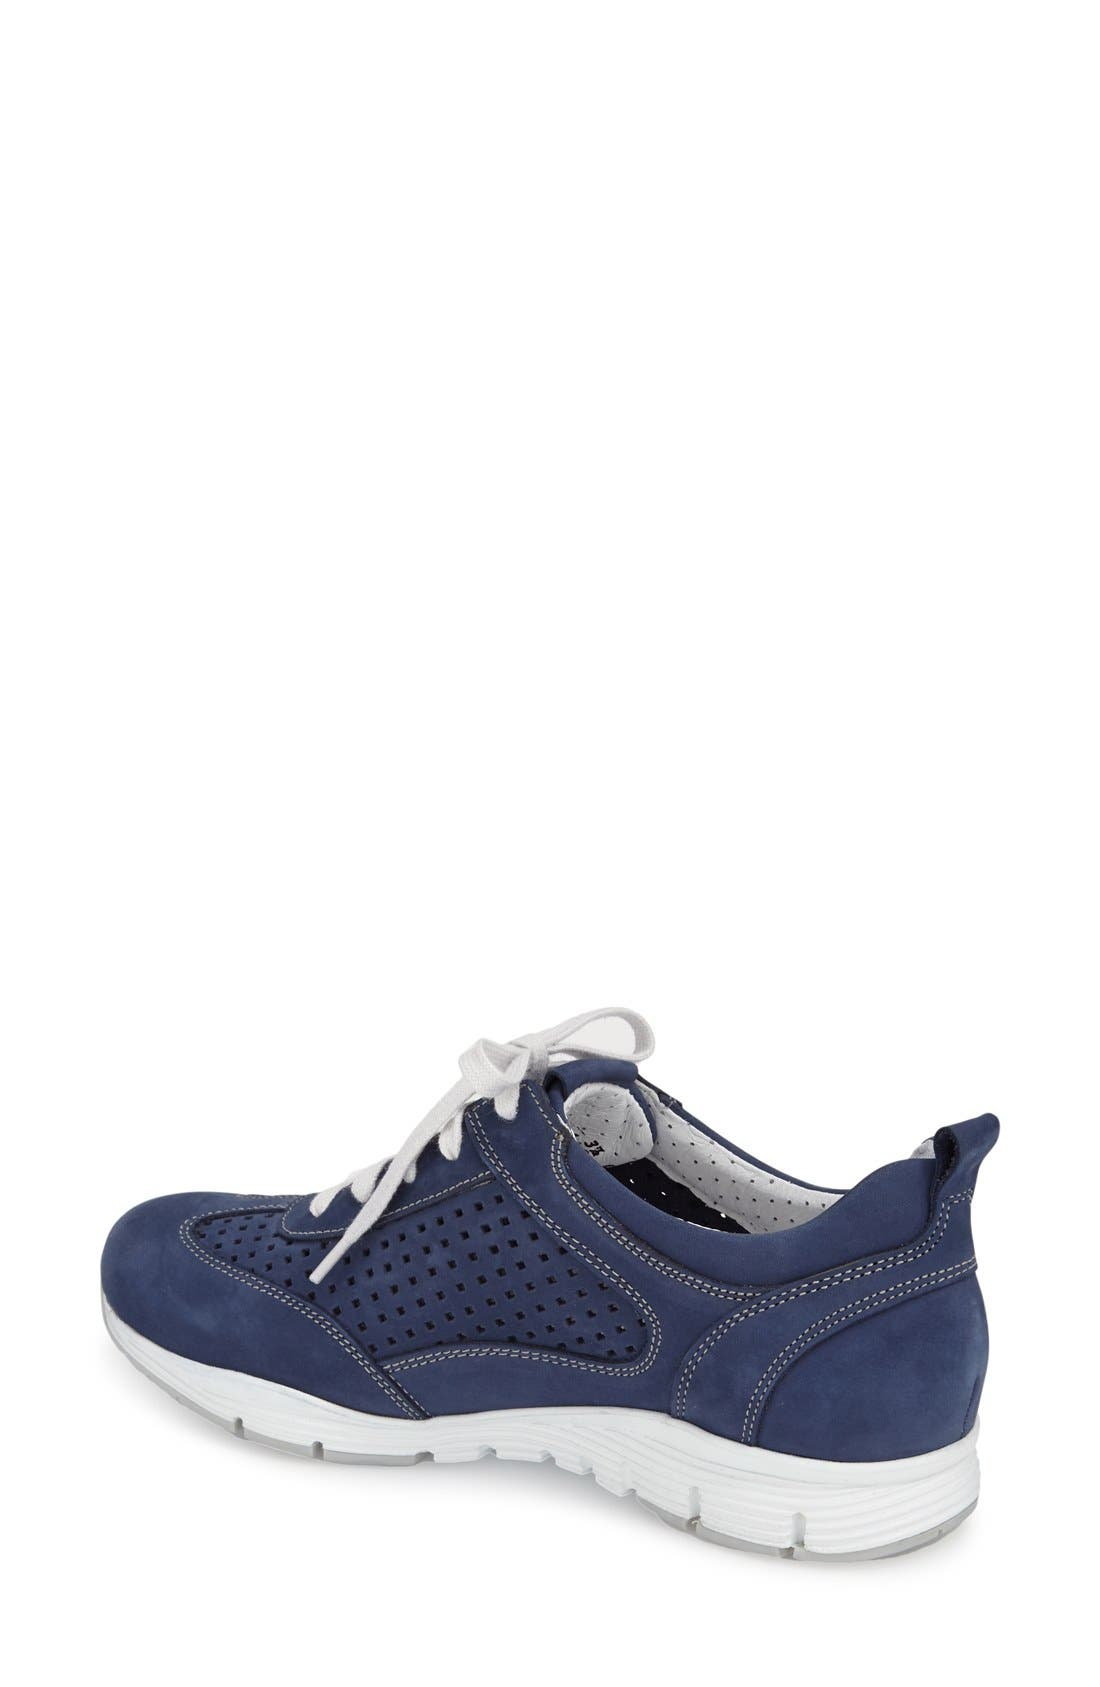 Alternate Image 2  - Mephisto 'Yoana' Soft Air Perforated Sneaker (Women)